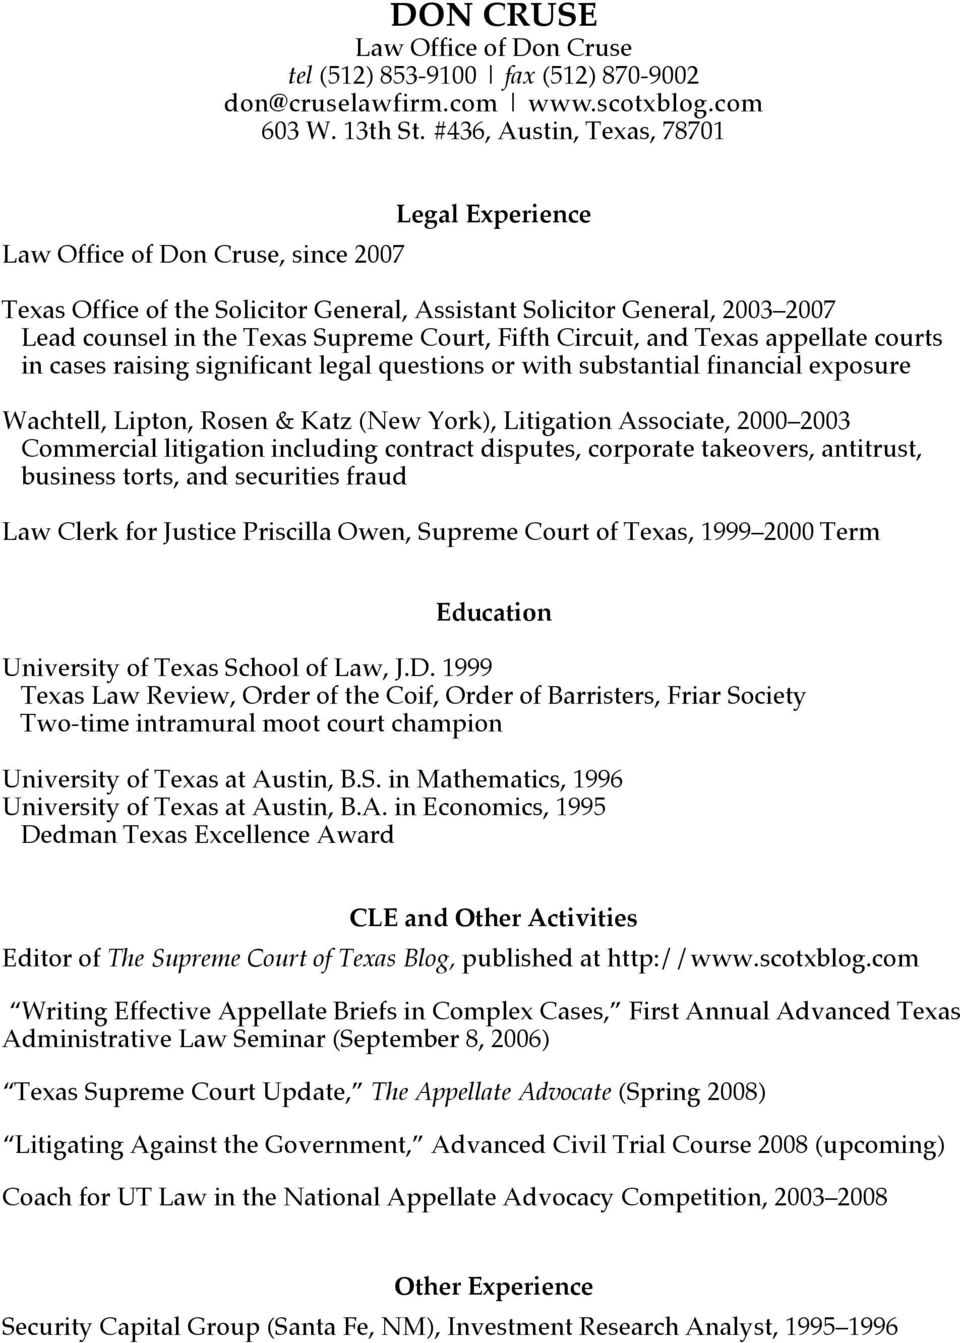 Fifth Circuit, and Texas appellate courts in cases raising significant legal questions or with substantial financial exposure Wachtell, Lipton, Rosen & Katz (New York), Litigation Associate, 2000